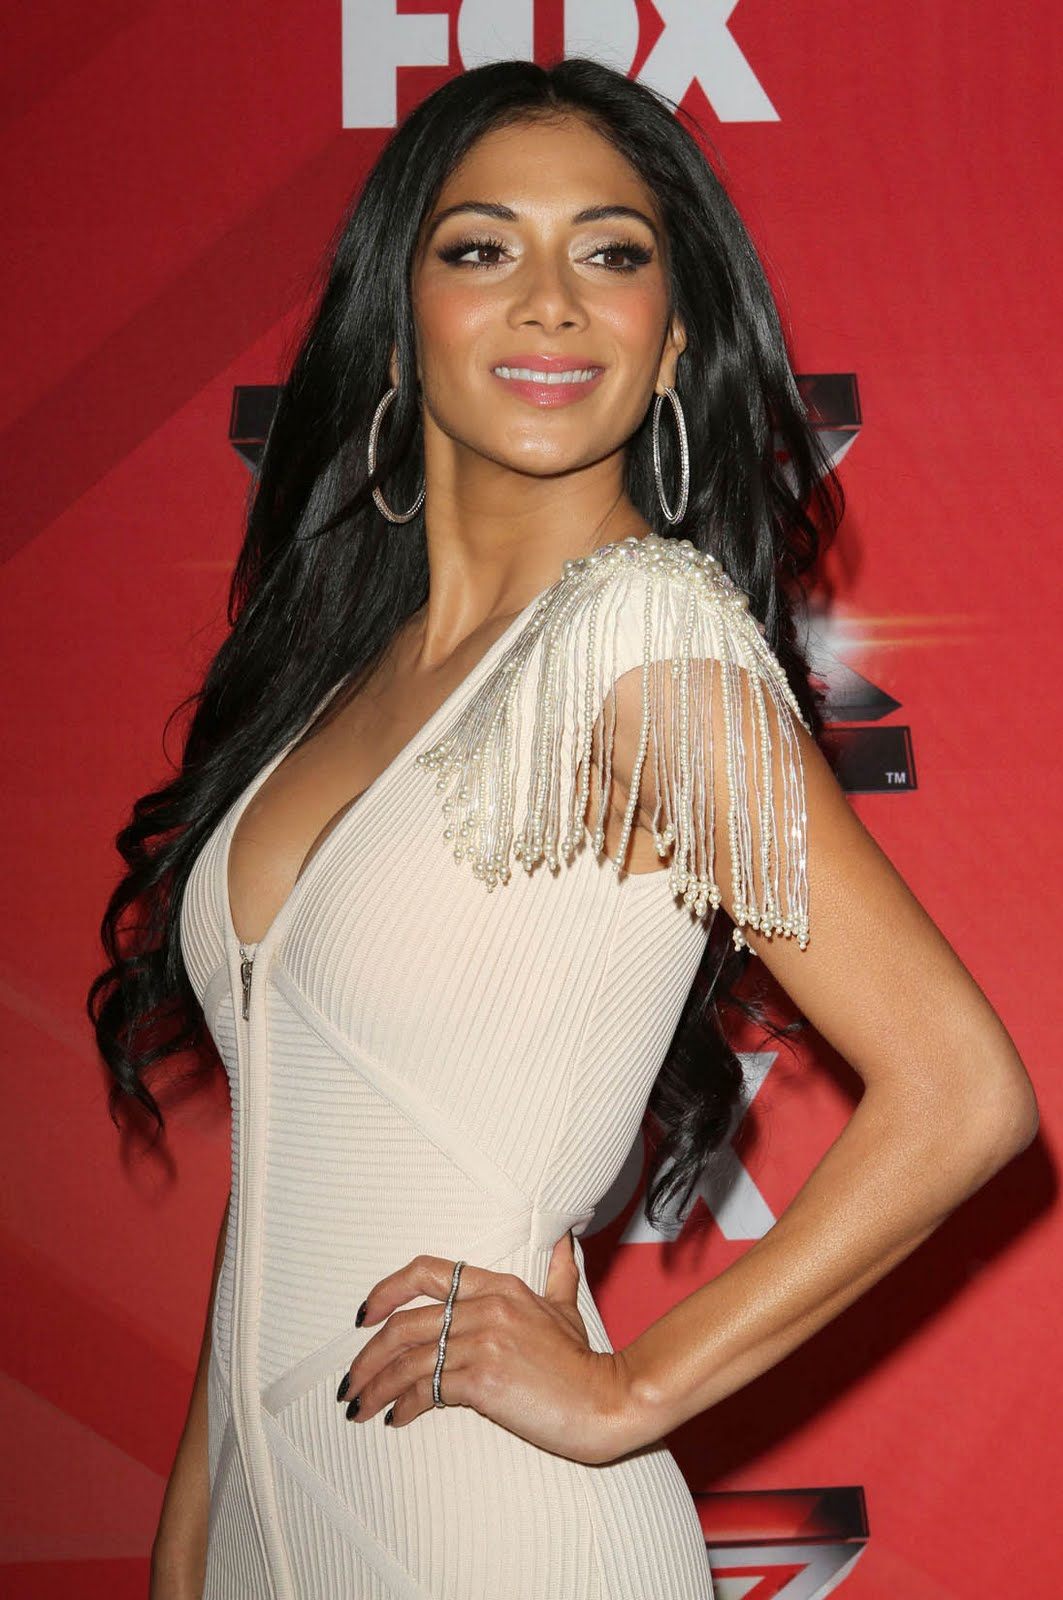 DIRTY MIND'S DELIGHT: Nicole Scherzinger's tightly wrapped boobs.